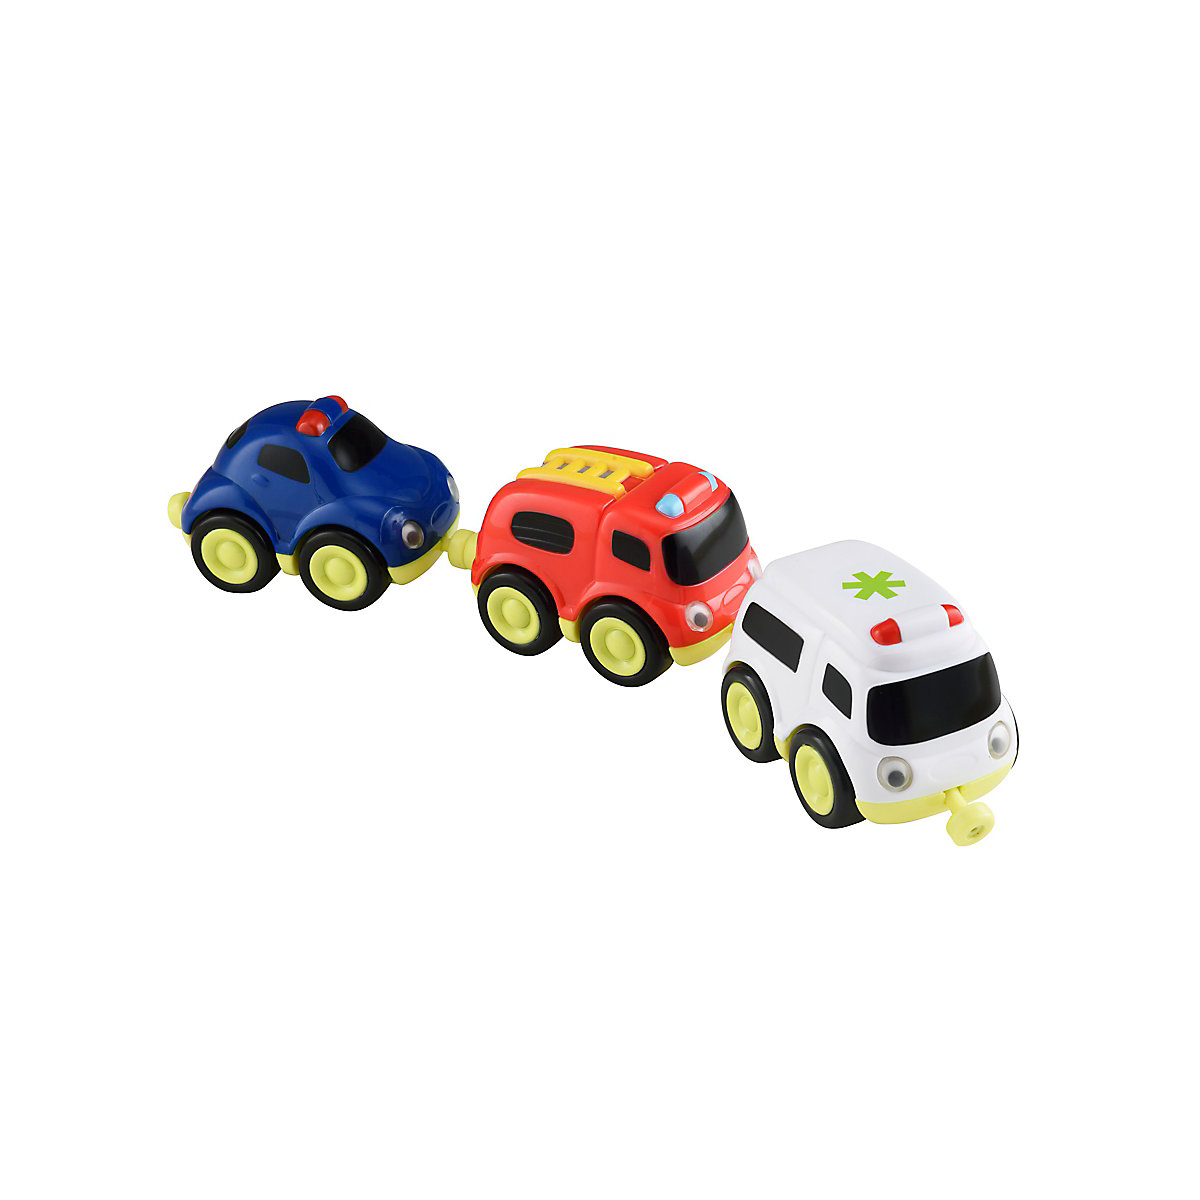 New ELC Boys/Girls Whizz World Emergency Vehicles Trio Set Toy From 12 months